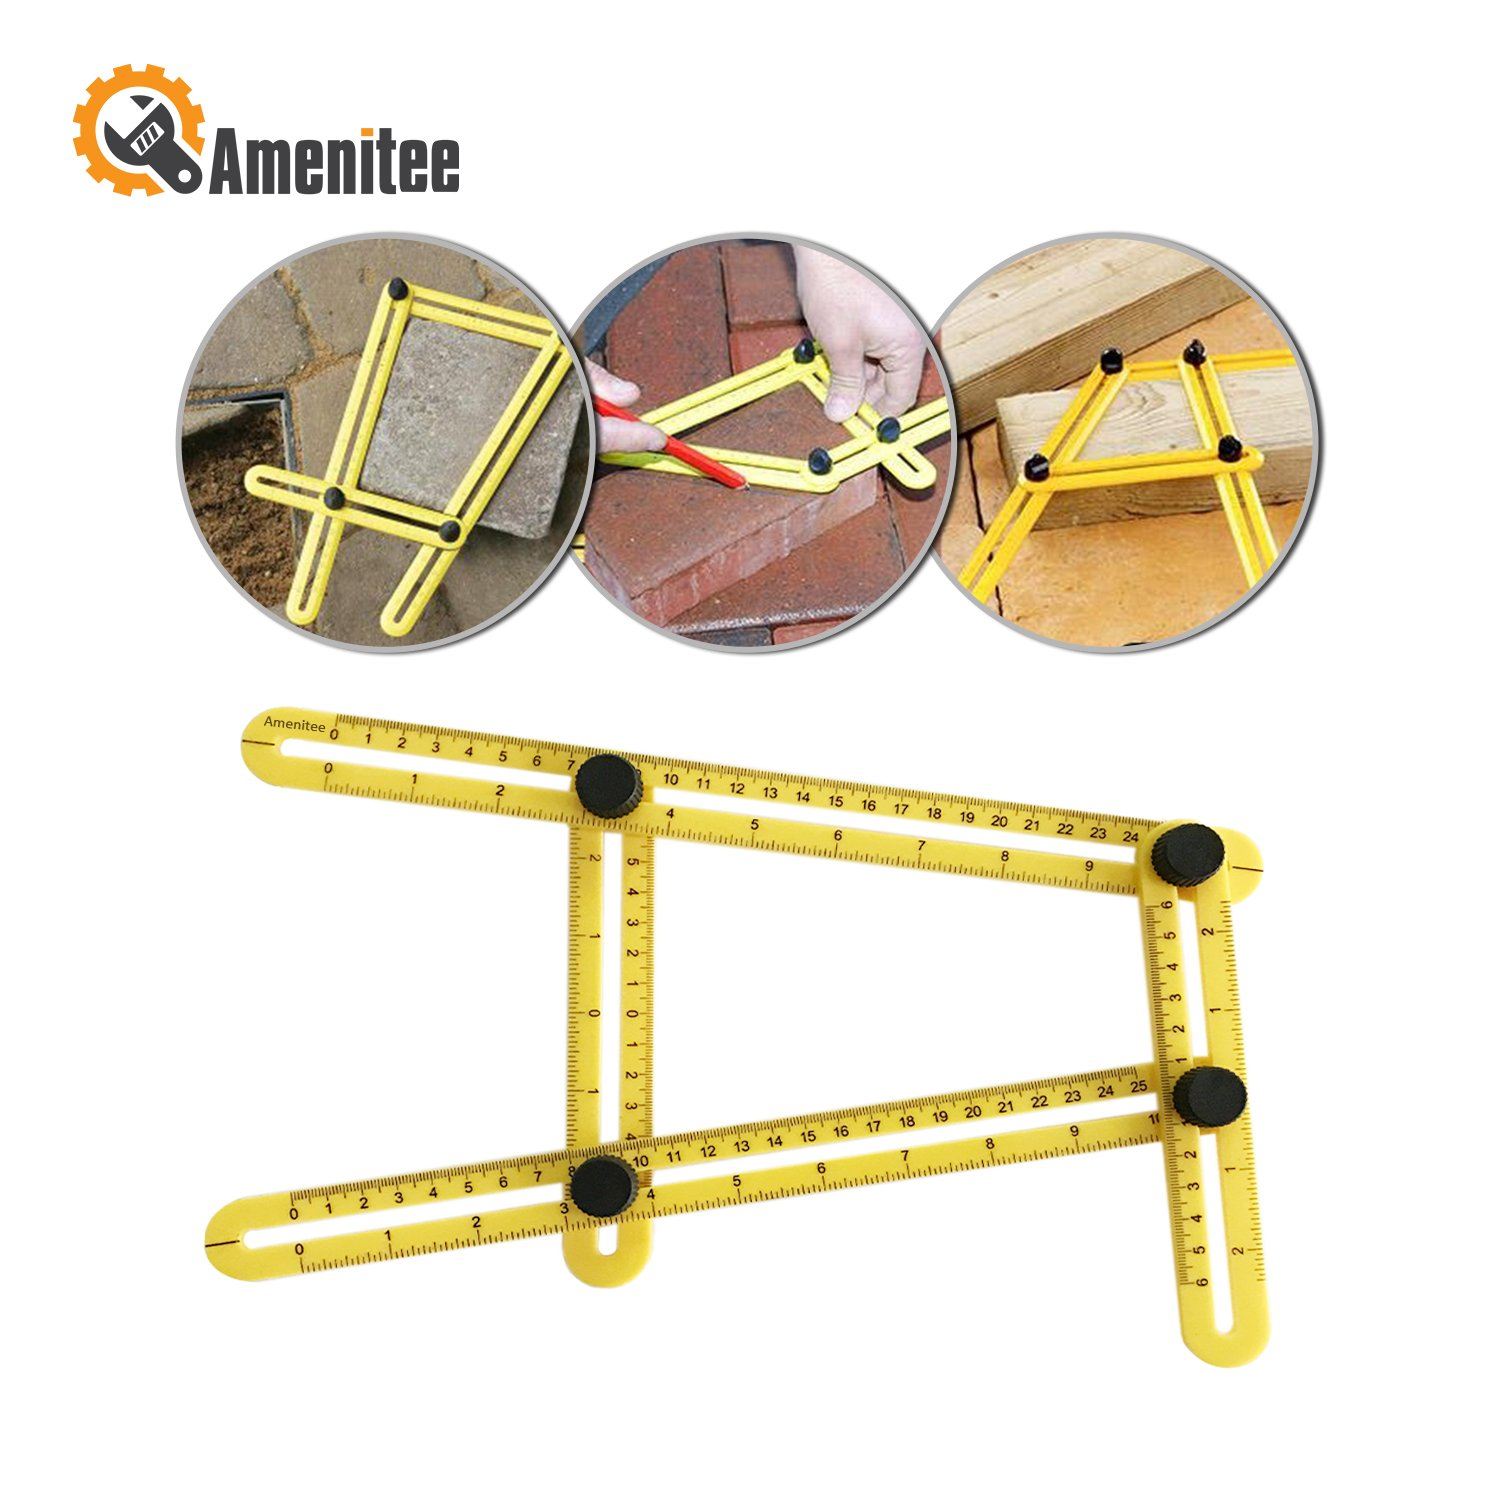 Amenitee Ultimate Irregular Shape Copy Tool - Universal Angularizer Ruler - Easy Angle Ruler-Multi Angle Measuring Tool-Embedded ABS Bolts and Nuts-Ultimate Template Tool(Yellow)